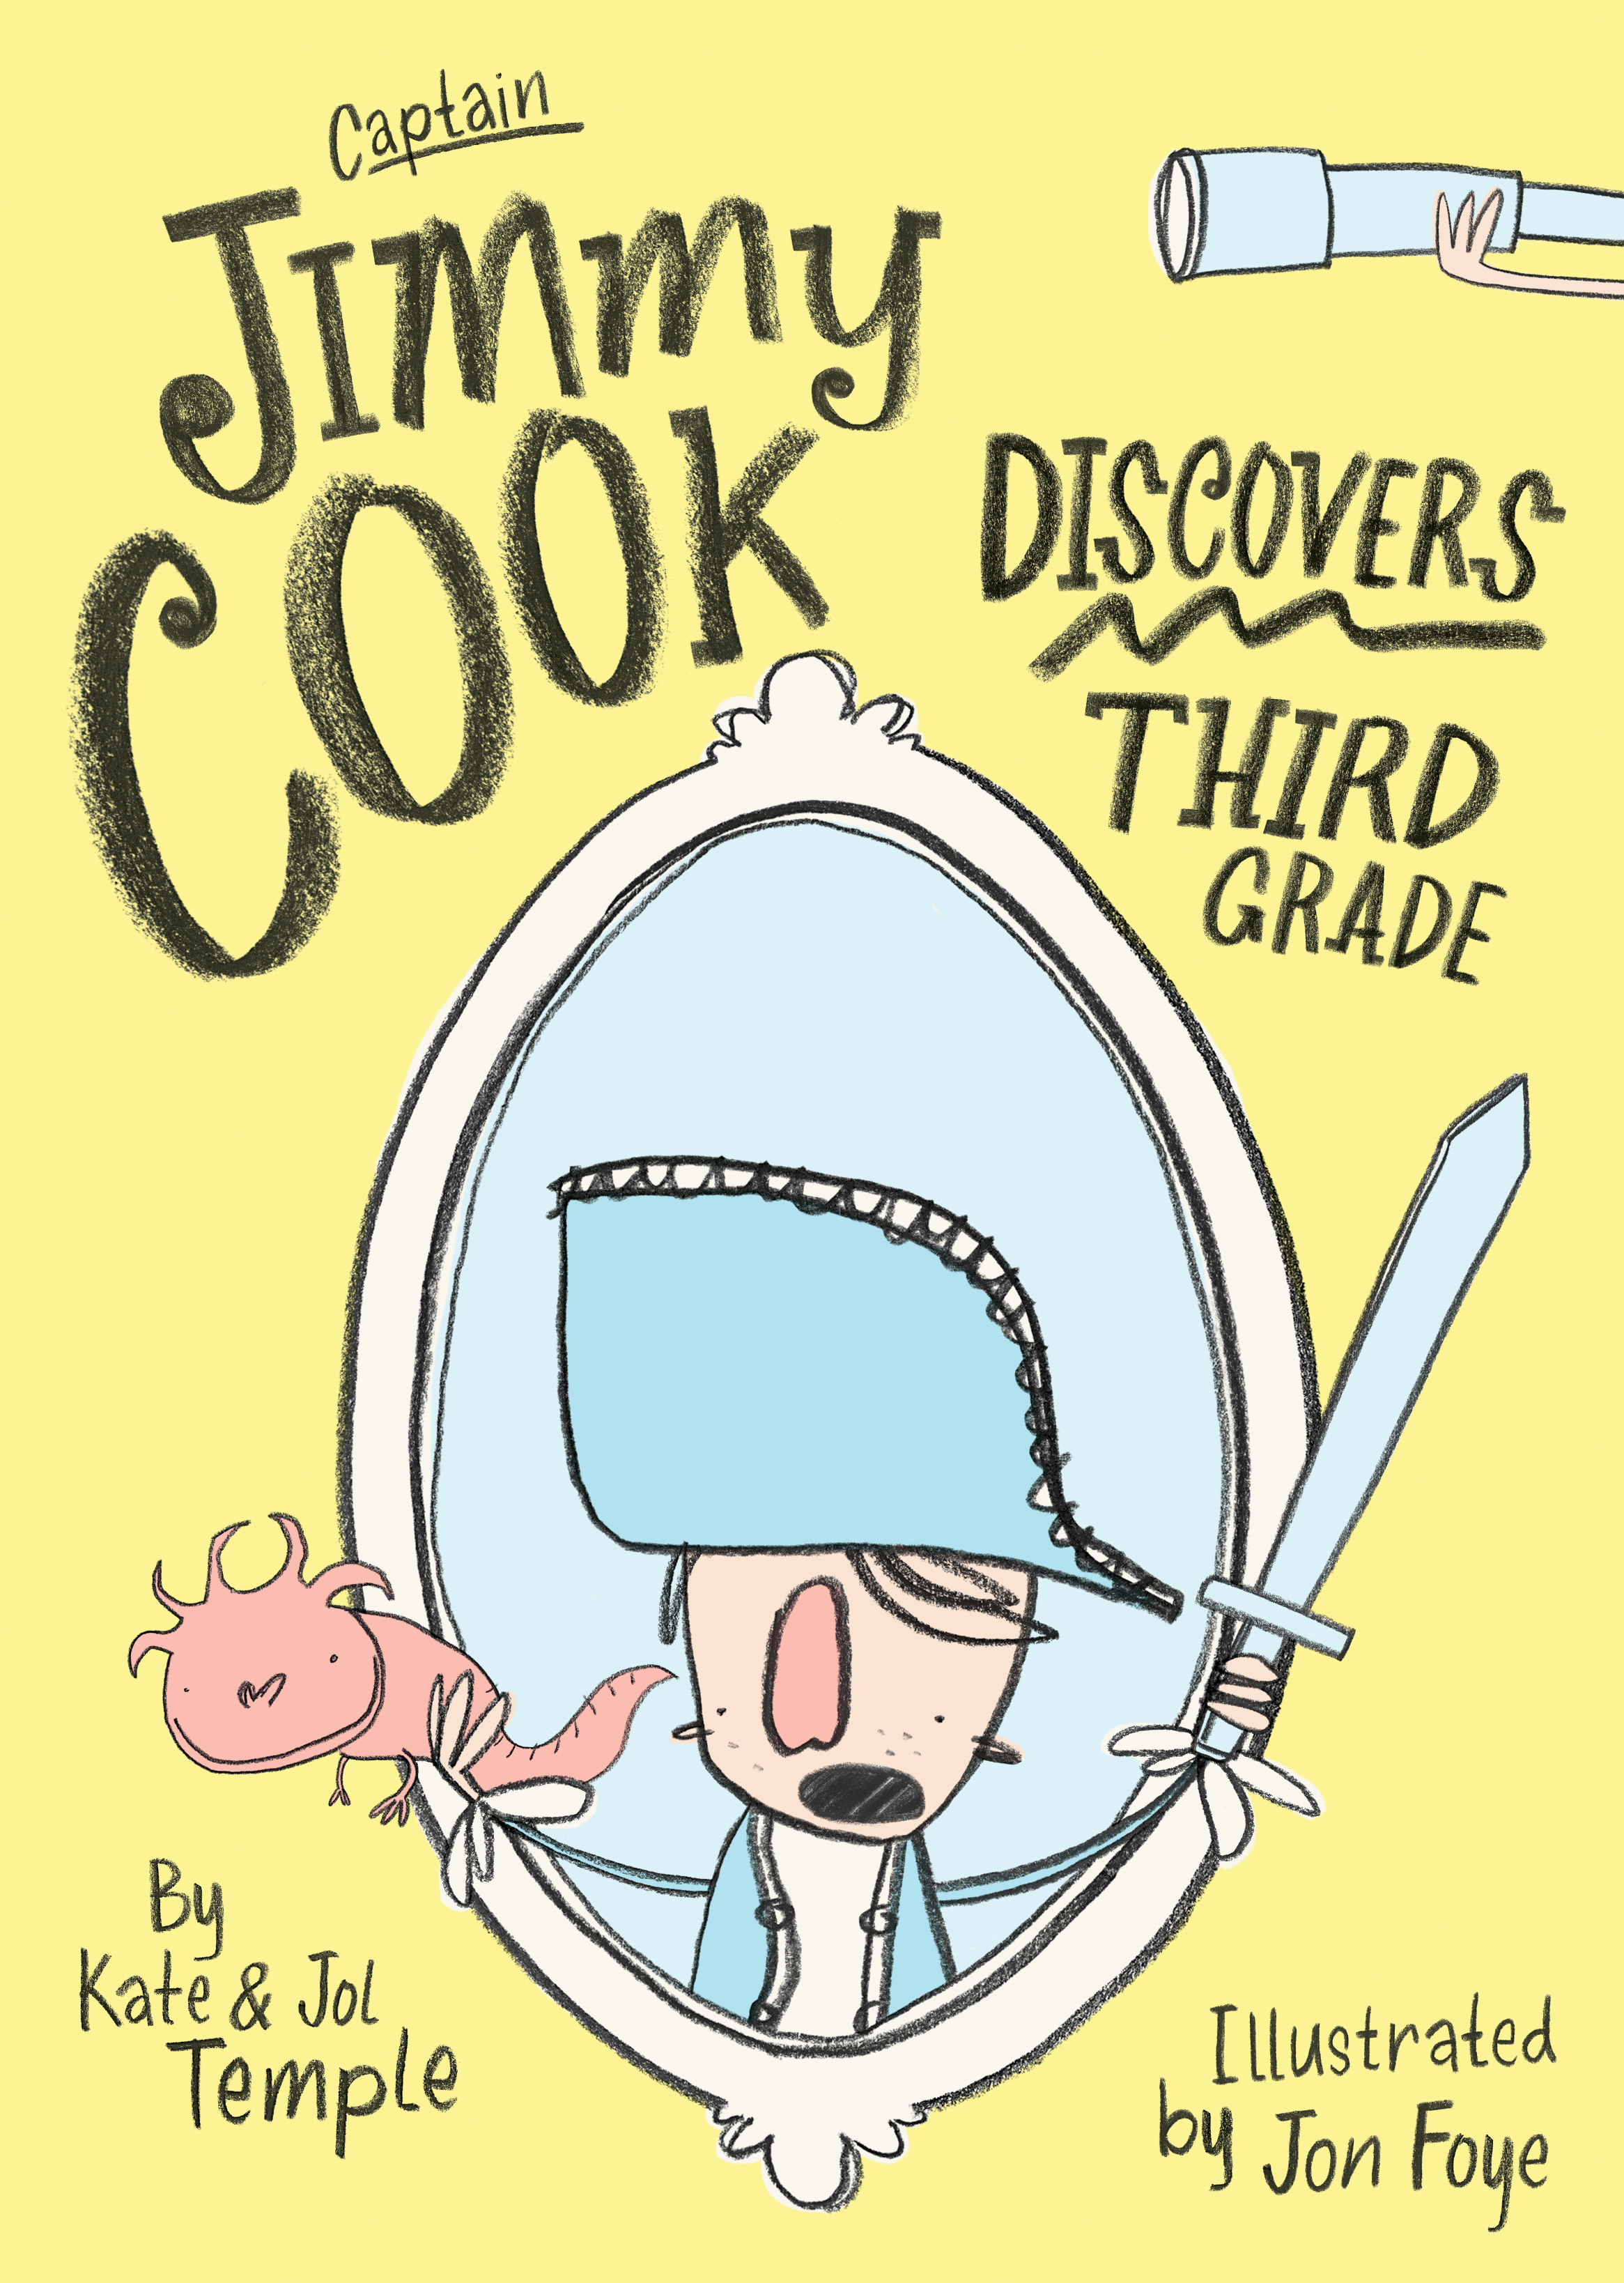 Captain Jimmy Cook Discovers Third Grade by Kate Temple, Jol Temple, Jon Foye, ISBN: 9781760291938